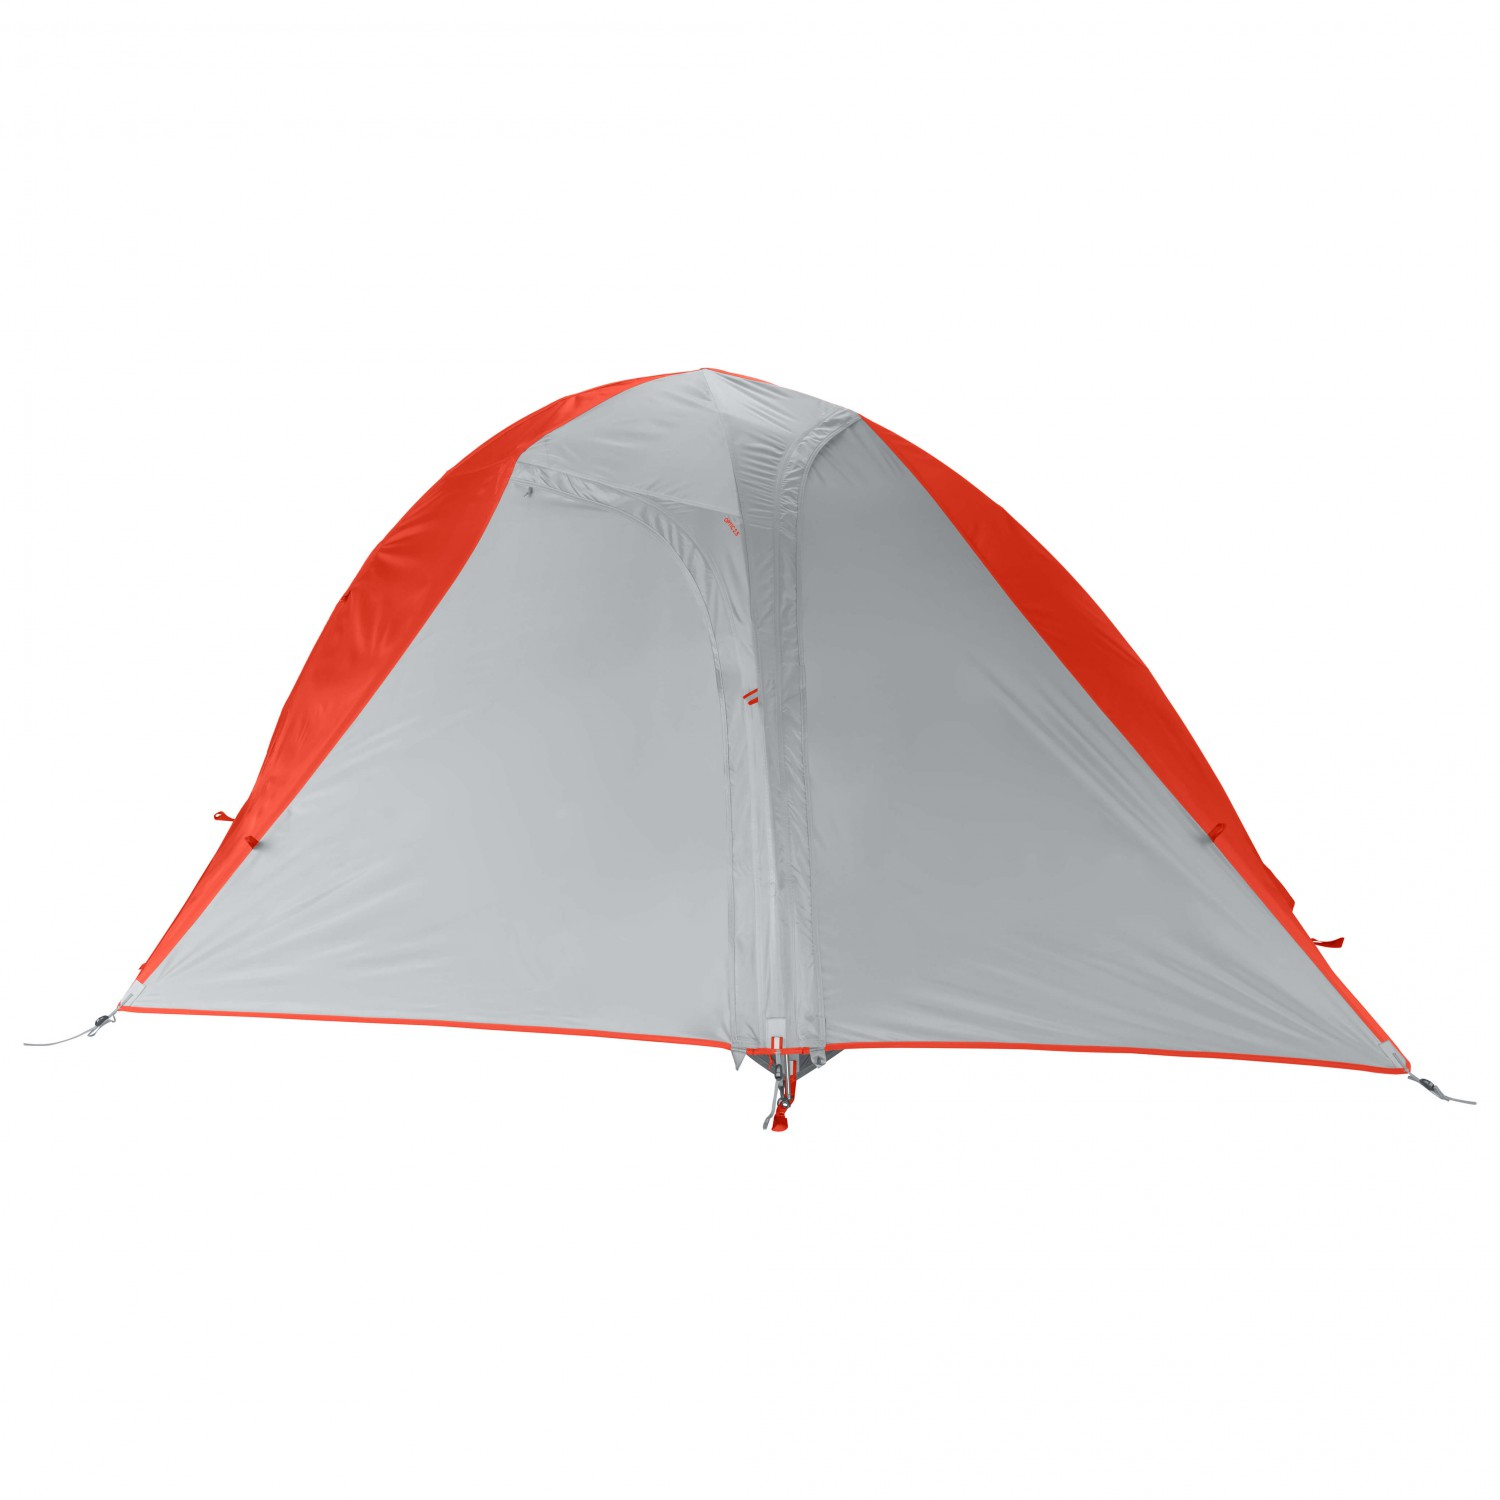 Mountain Hardwear - Optic 2.5 - 2-person tent ...  sc 1 st  Alpinetrek & Mountain Hardwear Optic 2.5 - 2-Person Tent | Free UK Delivery ...